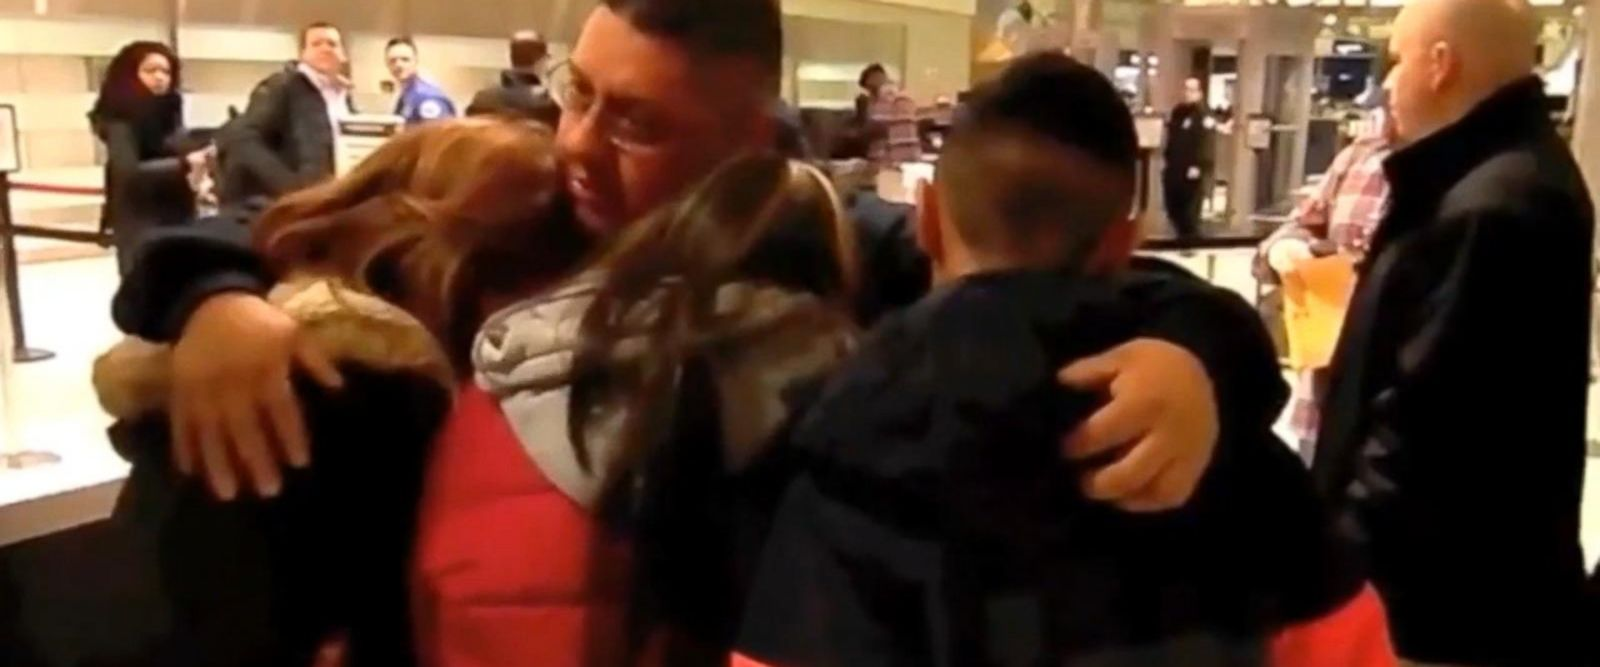 VIDEO: A tearful scene unfolded at Detroit Metropolitan Airport on Monday morning, where Jorge Garcia, a father of two and a 30-year resident of Detroit, was deported to Mexico amid cries from his family.